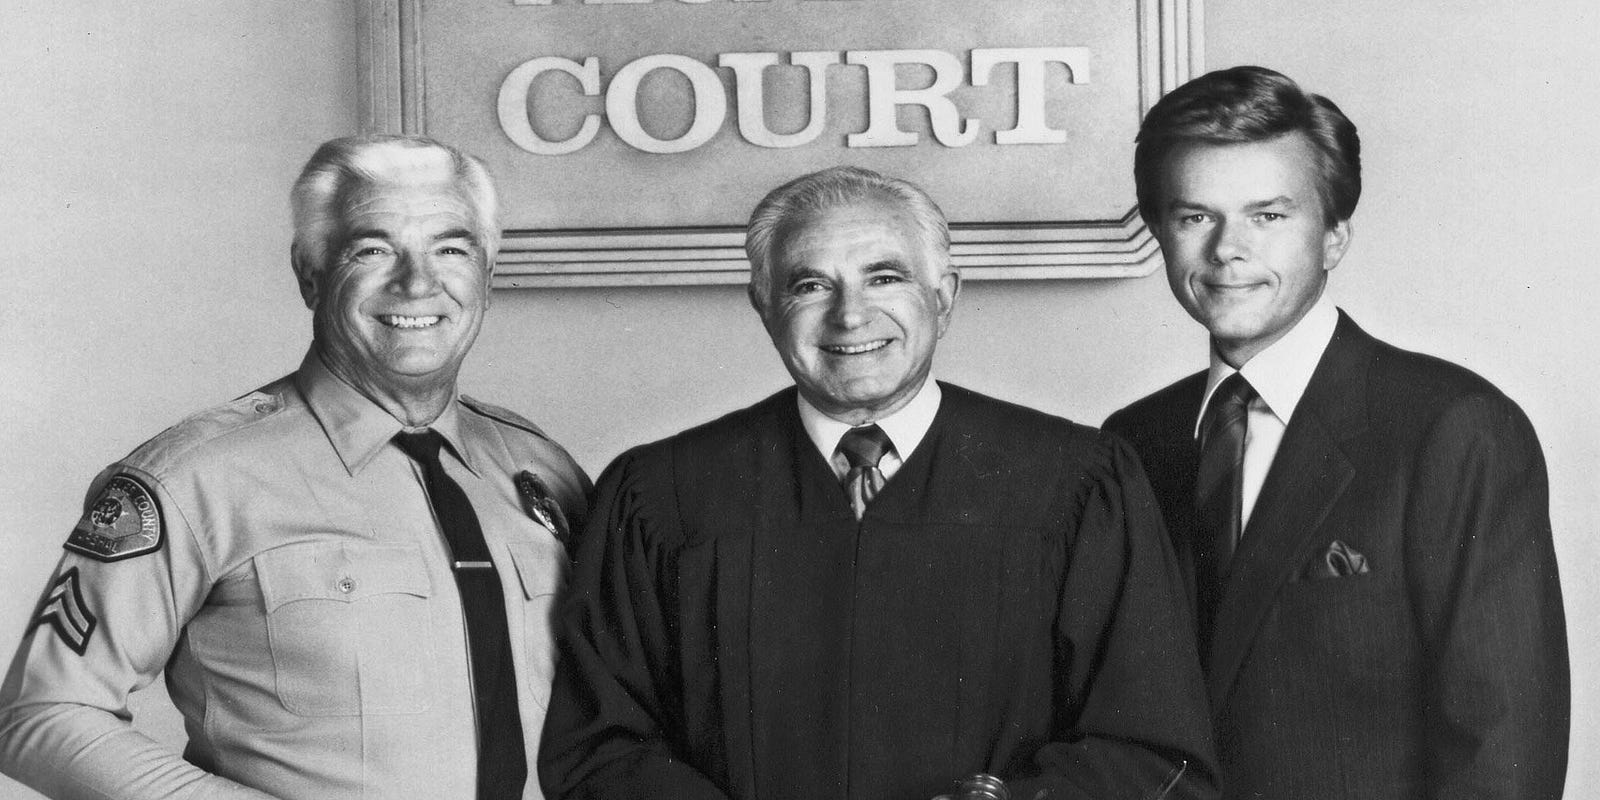 Joseph Wapner First Peoples Court Judge Dies At 97 Radio Wave Diagram Http Hollywoodbollywood Co In Hoadmin